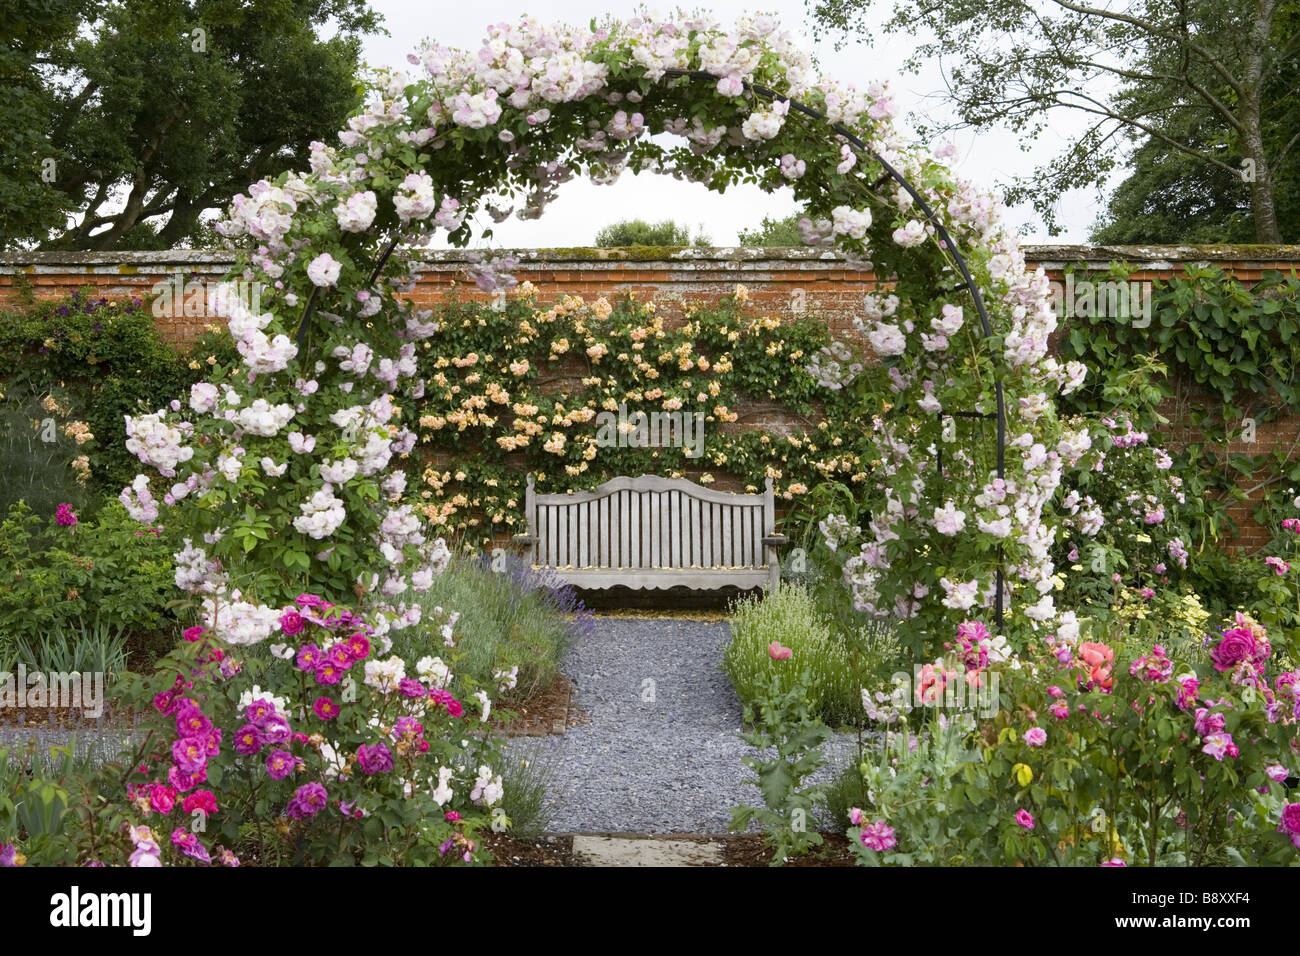 Stock Photo   View Through The Arch And Bench In The Rose Garden At  Mottisfont Abbey Hampshire